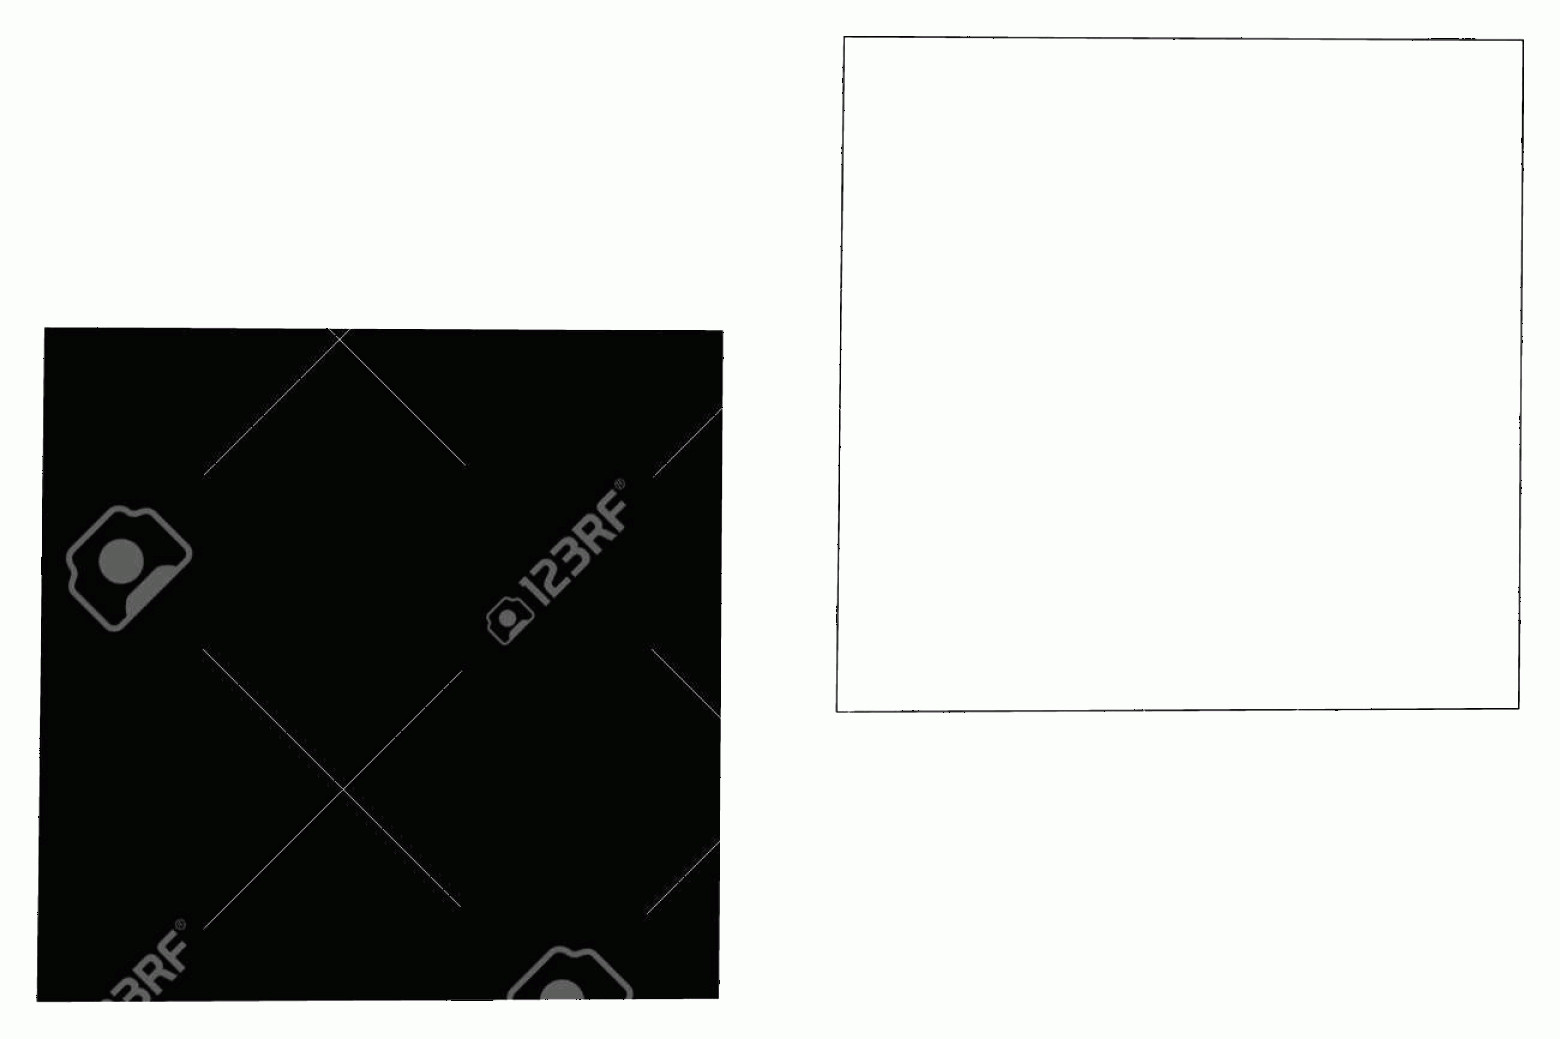 Armstrong Vector: Photostock Vector Armstrong County Texas Counties In Texas United States Of America Usa U S Us Map Vector Illustration